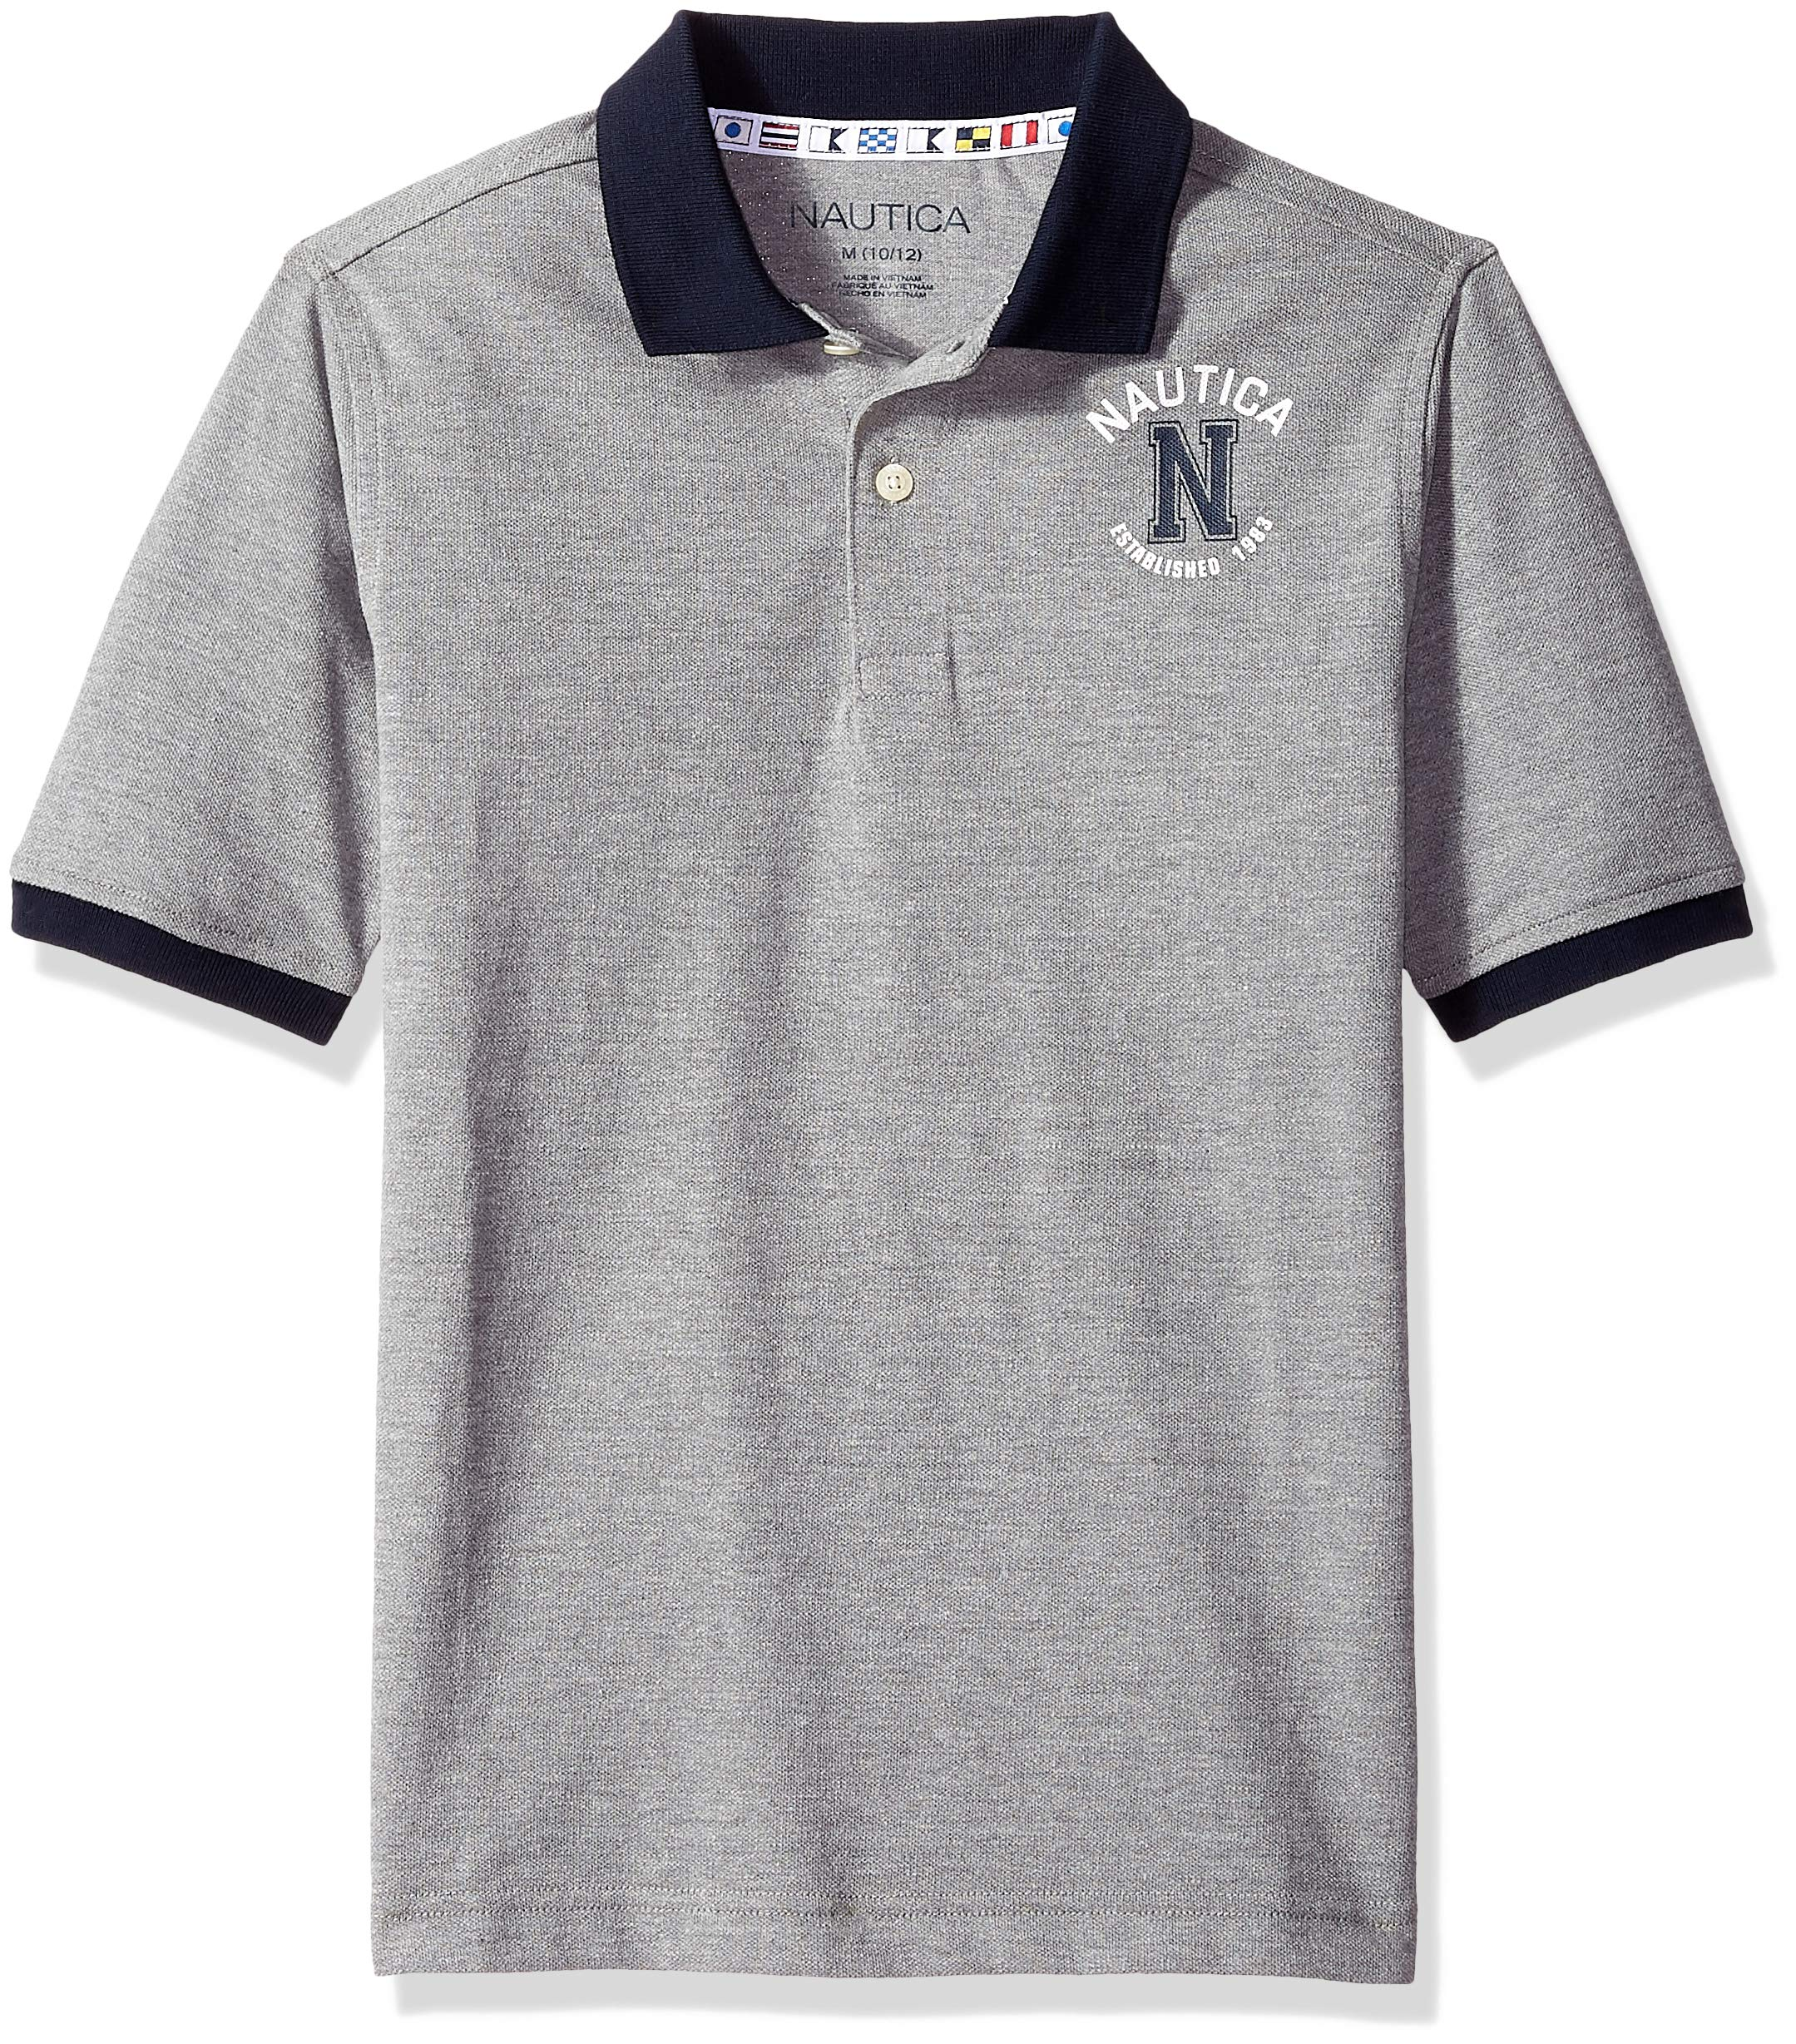 Nautica Little Boys' Short Sleeve Solid Deck Polo With Tipped Collar, Grey Hthr, Medium (5)